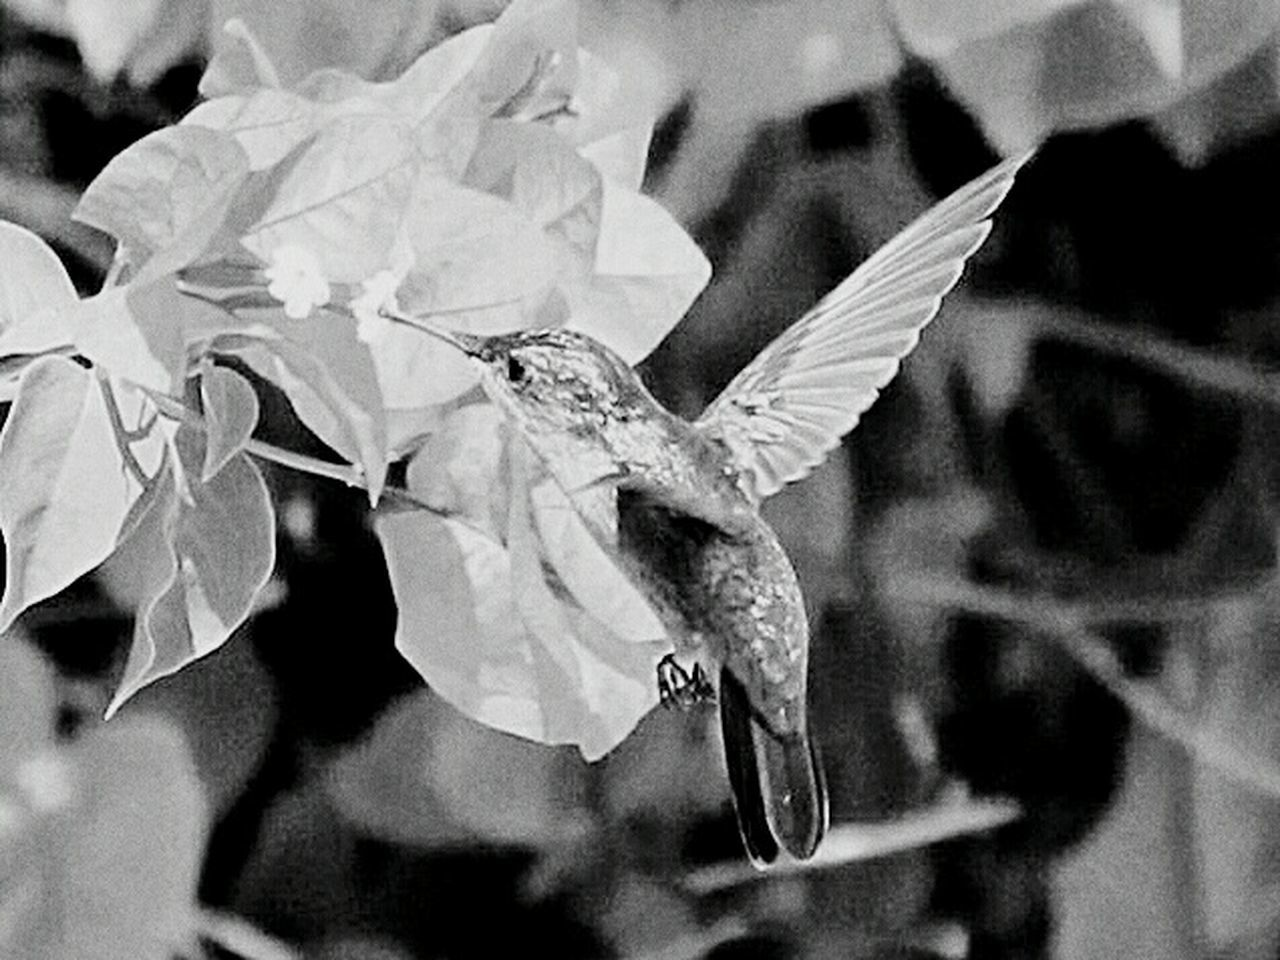 Humingbird Humingbirds Black And White Black And White Photography Monochrome Bird Photography Birds In Flight Birdwatching